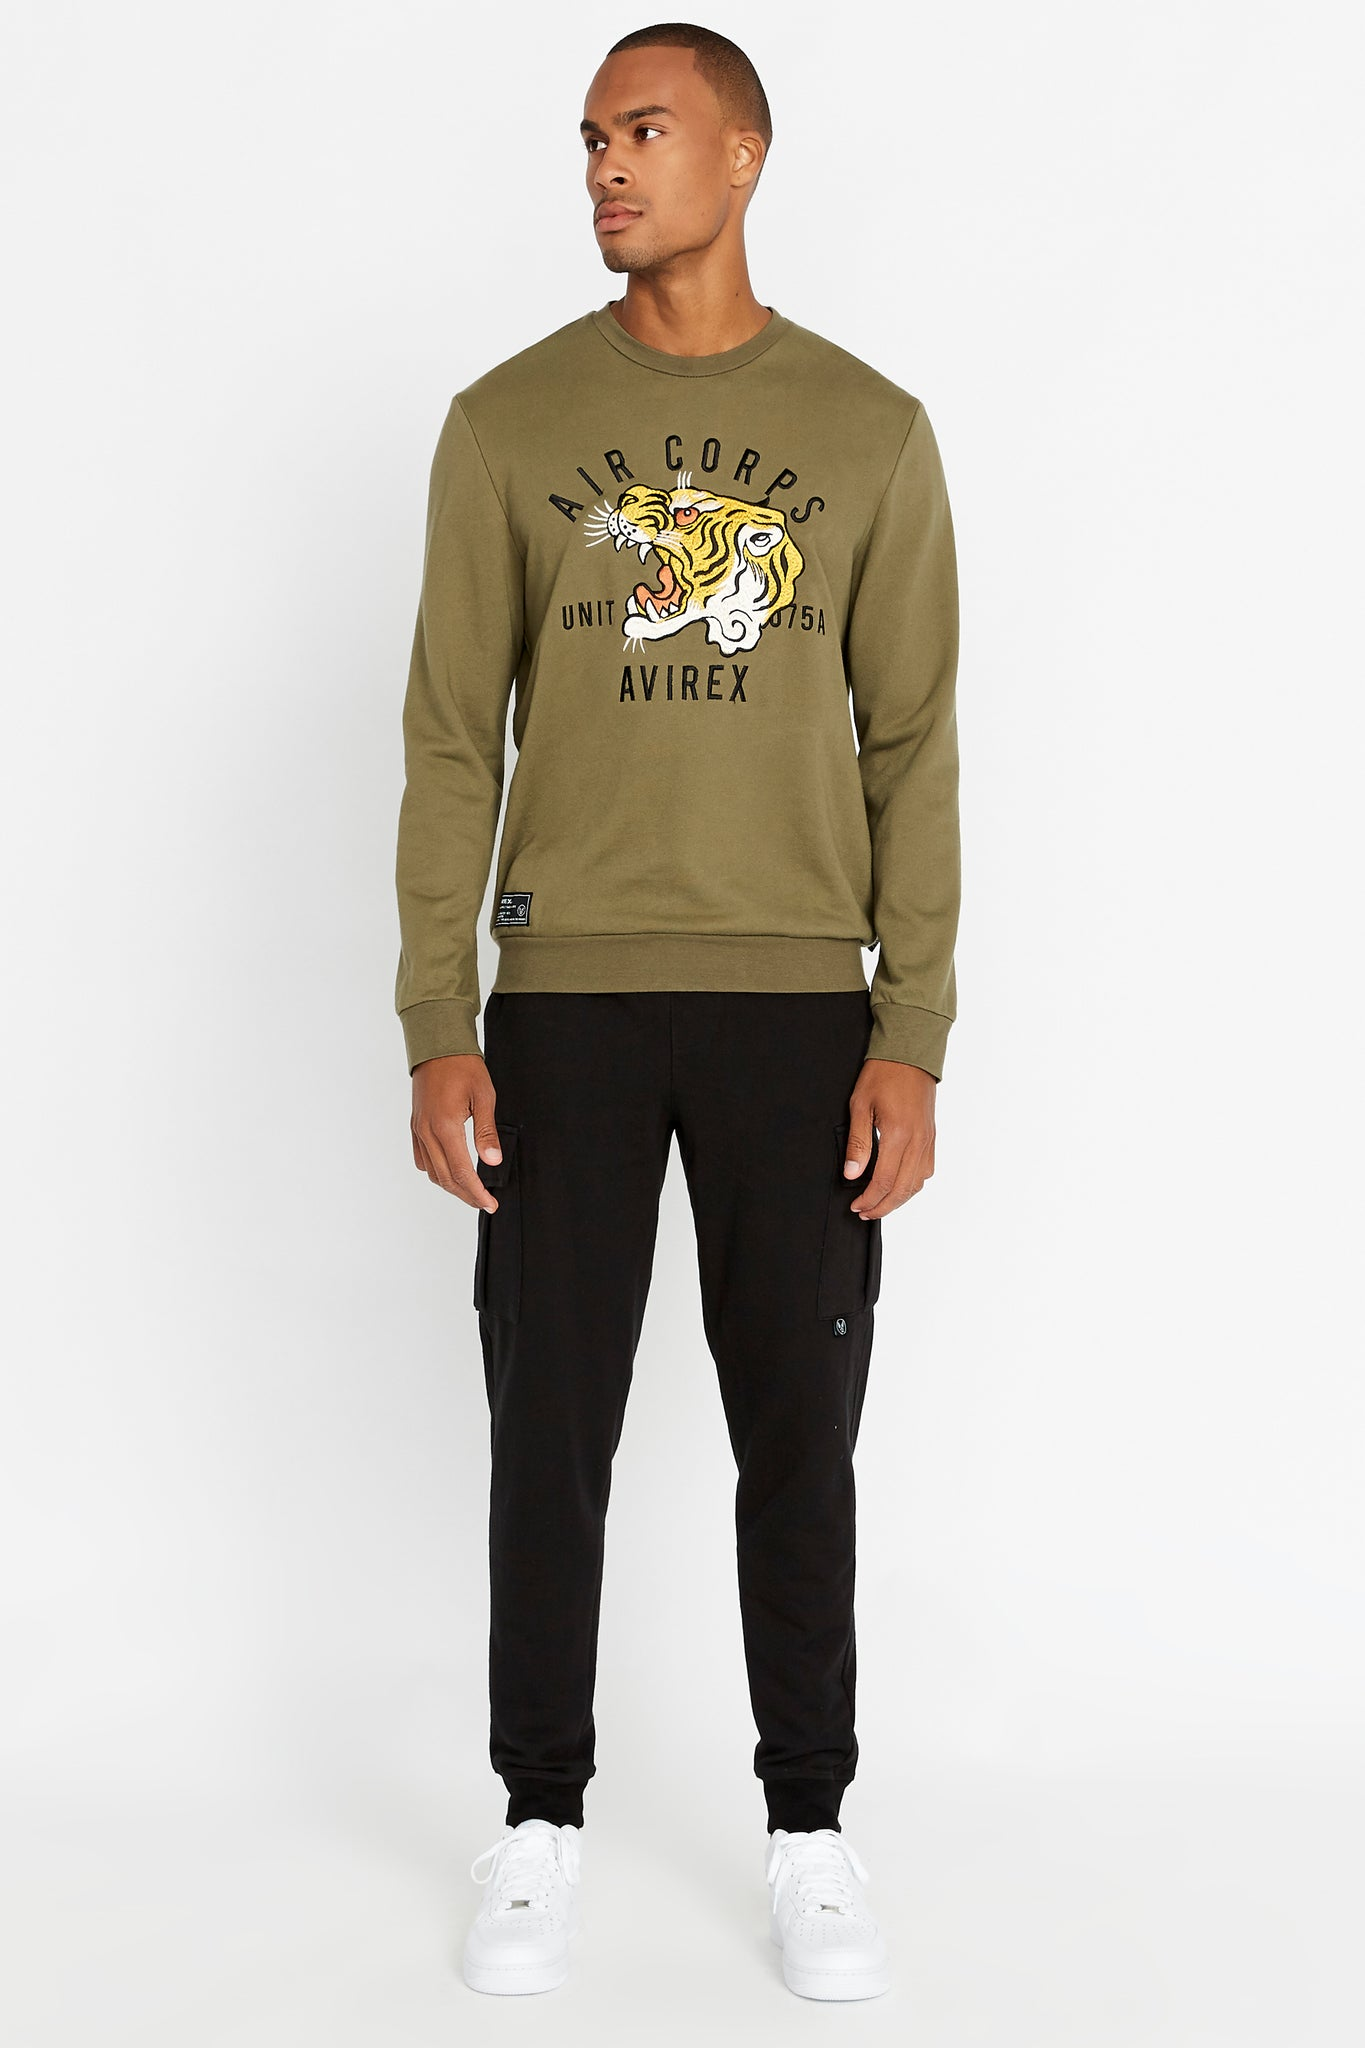 Full view of men wearing an olive long sleeve crew neck sweater with front tiger embroidery and patch on right bottom and black pants